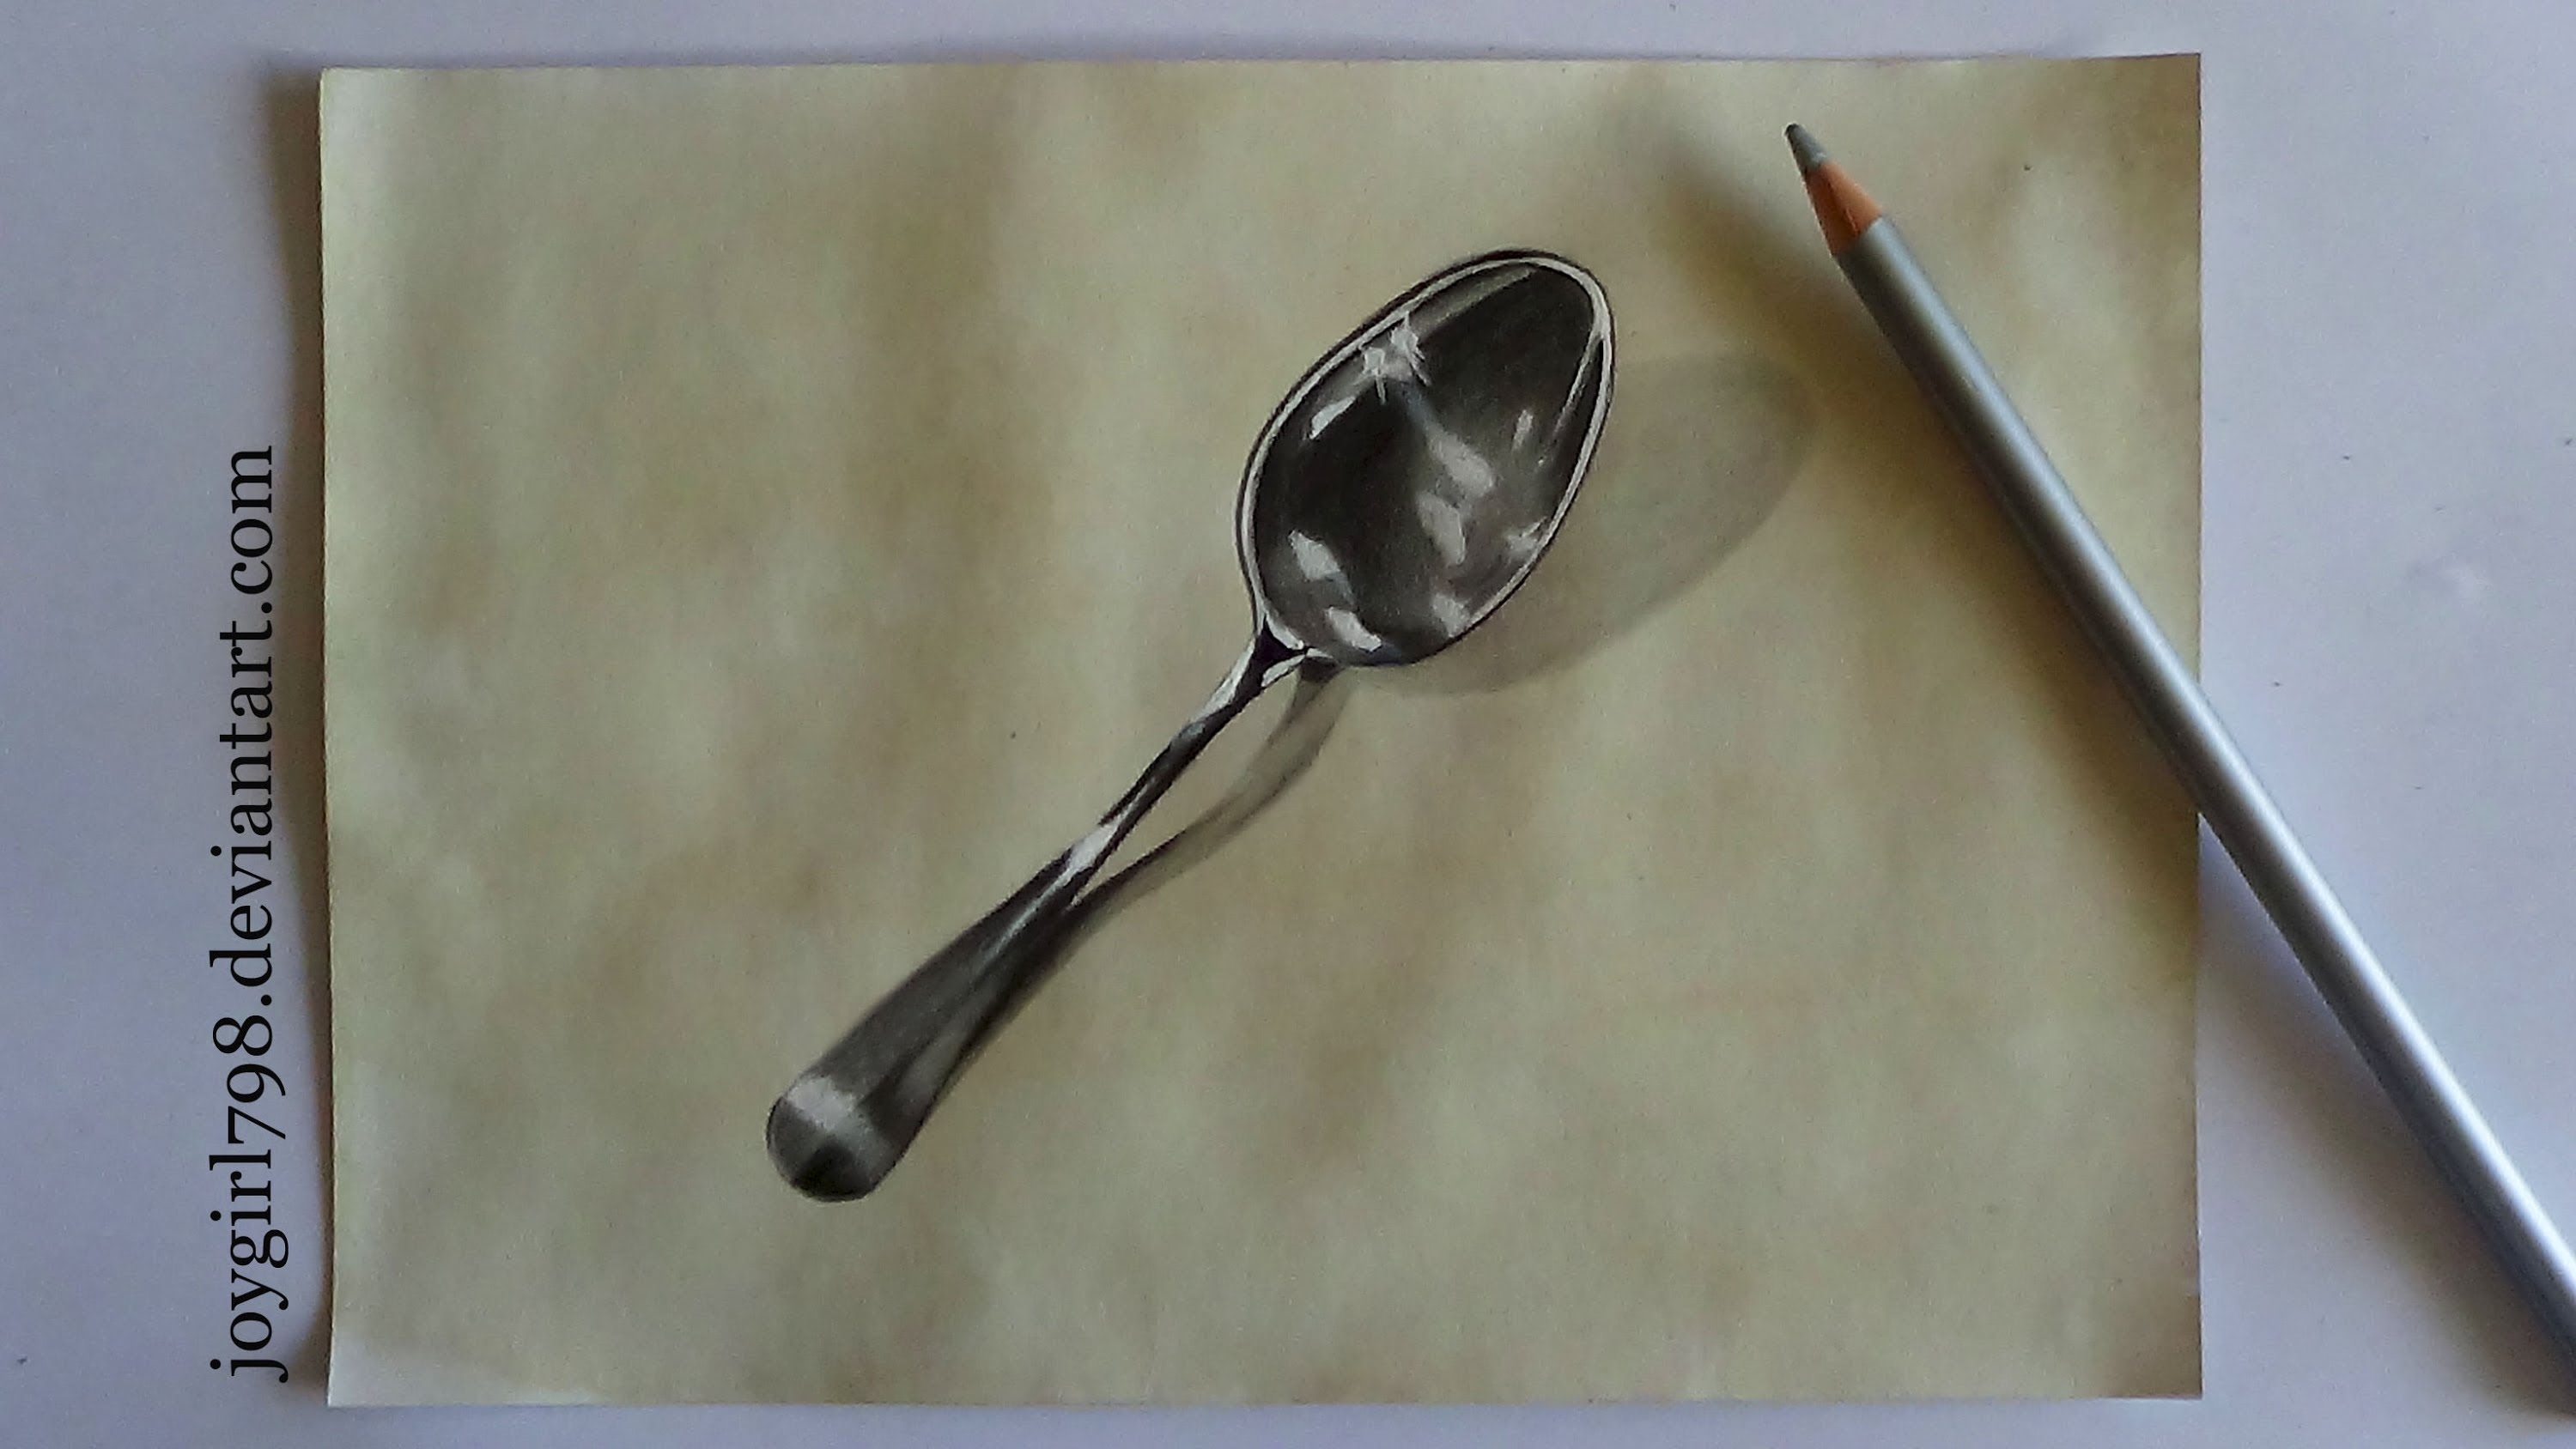 Drawn spoon pencil drawing Draw Pencils] YouTube Speed a